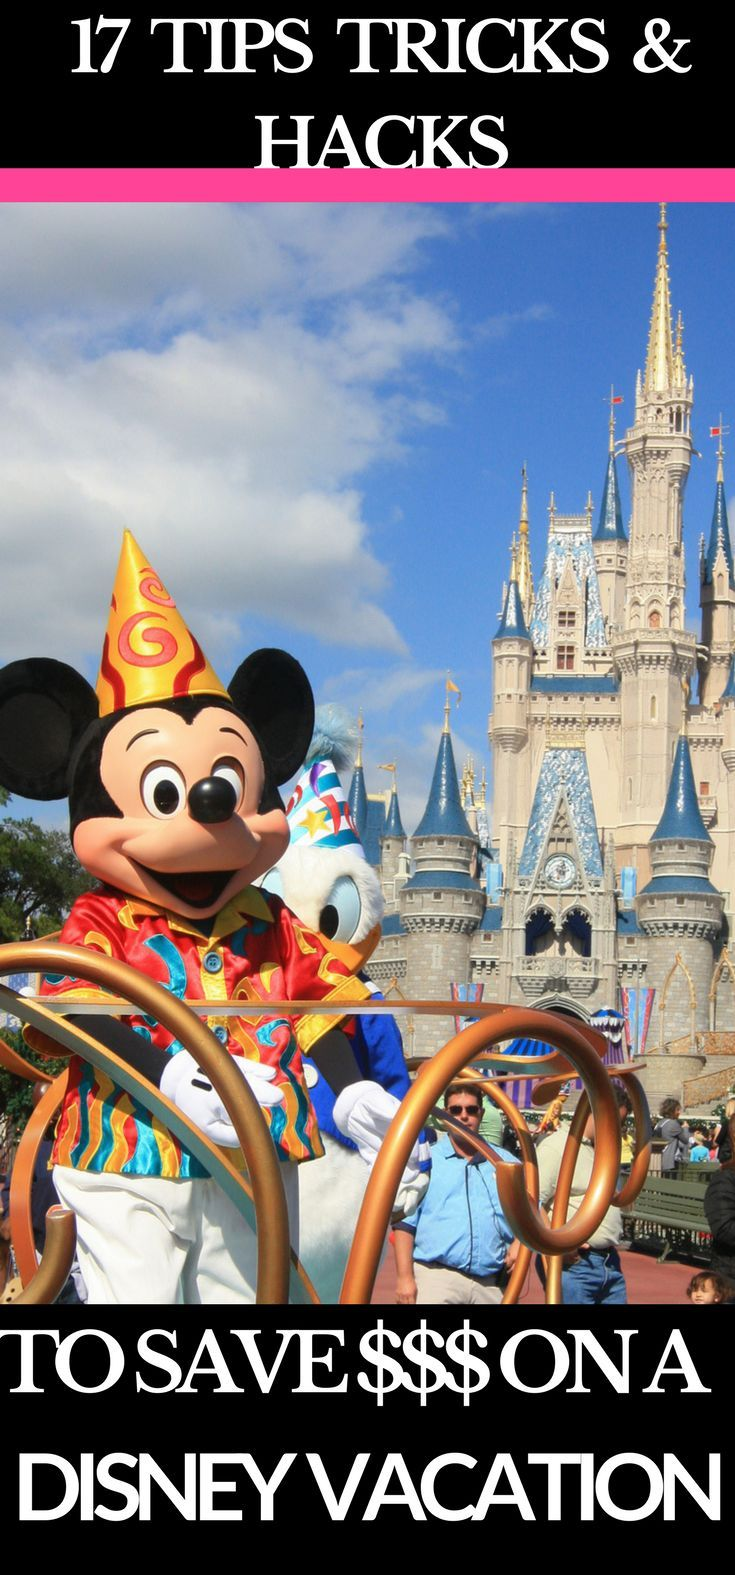 Is it possible to budget for Disney World without missing out? Yes! Saving money on a Disney World vacation is easy with these tips and tricks from a life long Disney traveling mother! I've put together a list of my best tips and money saving tricks for you to plan your family Disney vacation so you can save money and have fun without missing out on a thing! #DisneyWorld #DisneyWorldTips